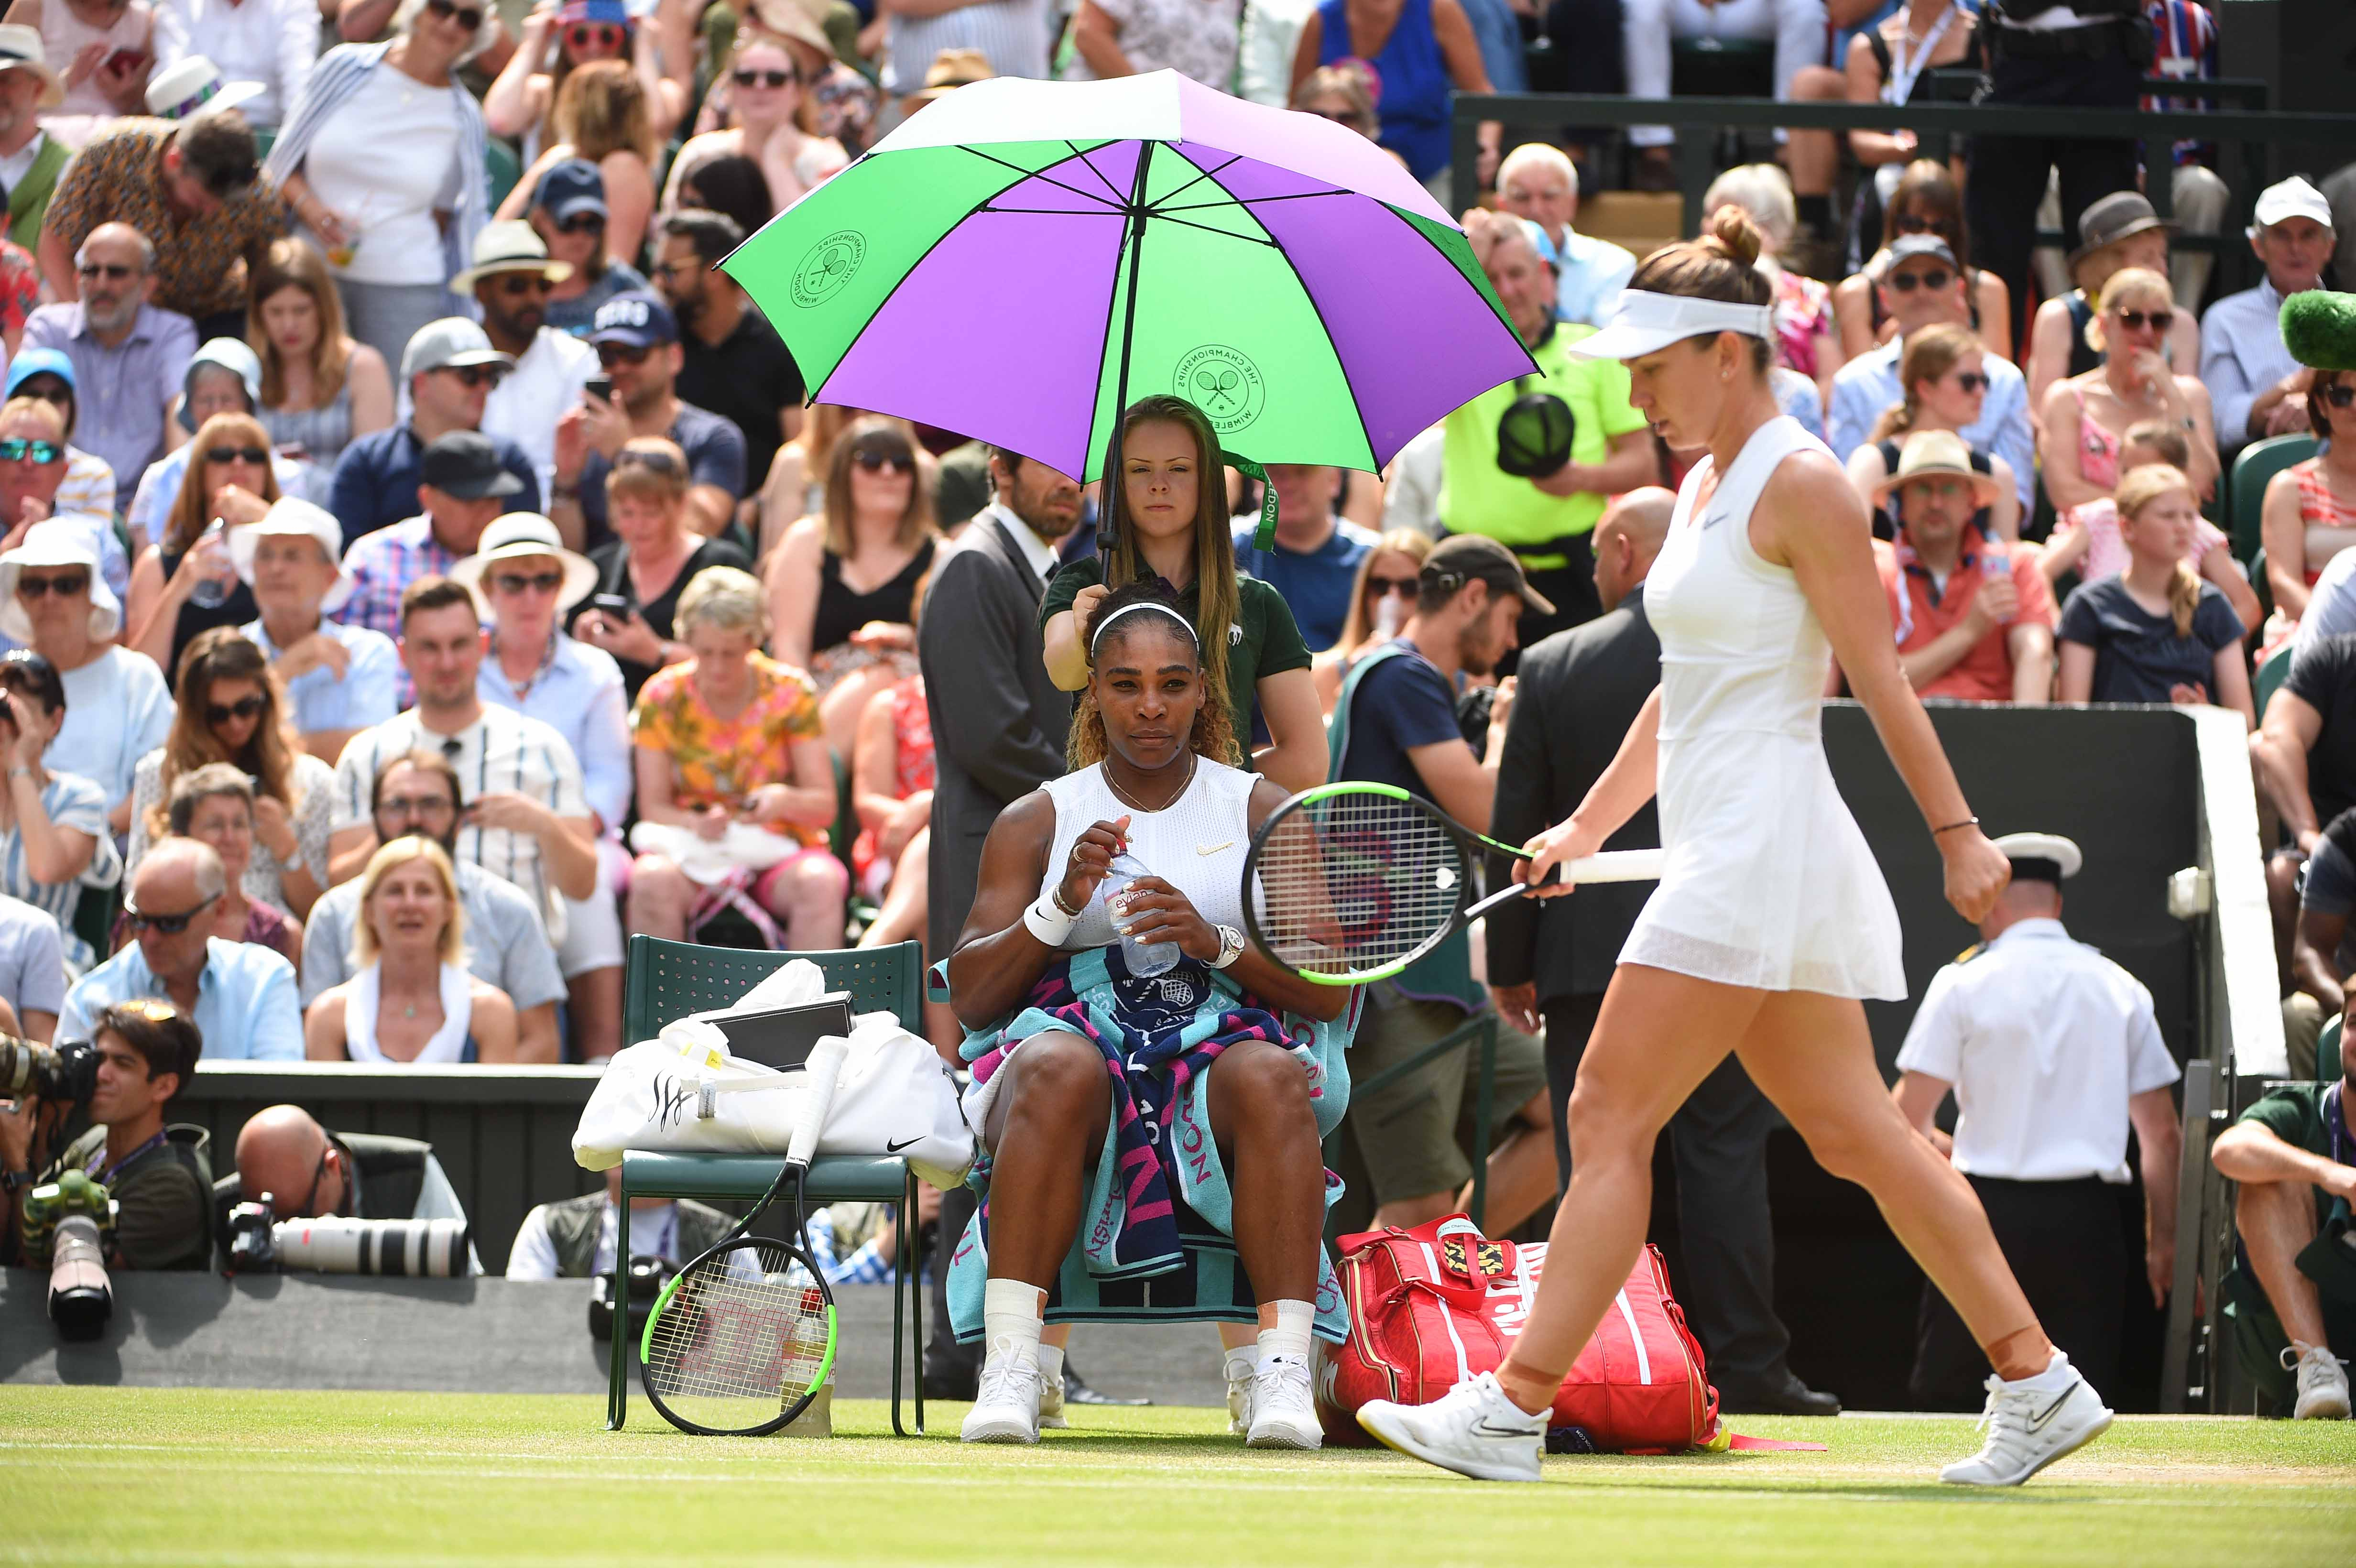 Serena Williams and Simona Halep during a changeover at Wimbledon 2019